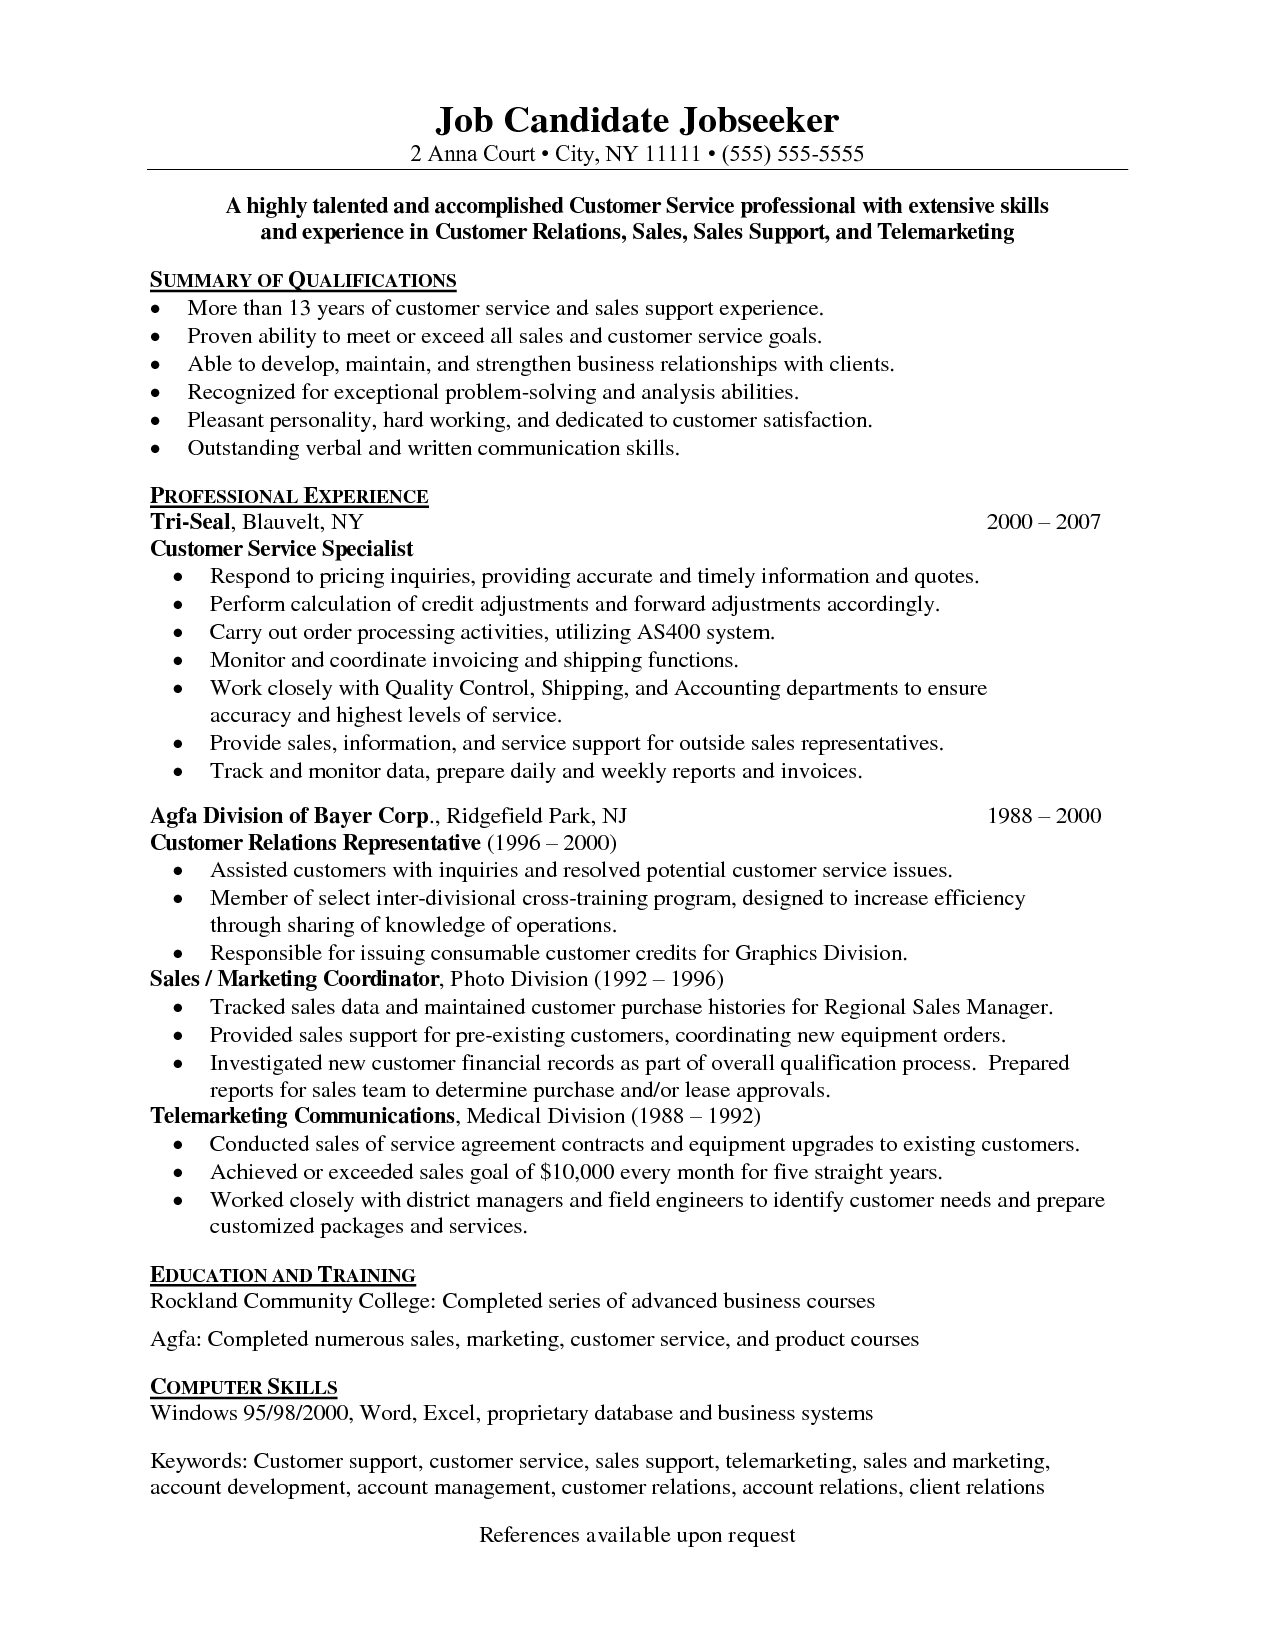 Opposenewapstandardsus  Stunning Customer Service Resume Format  Roiinvestingcom With Fascinating Customer Service Resume Format  With Appealing Freshman In College Resume Also How To Present Your Resume In Addition Sample Resumes For Nurses And Psychology Resume Sample As Well As Outside Sales Representative Resume Additionally Costco Resume From Roiinvestingcom With Opposenewapstandardsus  Fascinating Customer Service Resume Format  Roiinvestingcom With Appealing Customer Service Resume Format  And Stunning Freshman In College Resume Also How To Present Your Resume In Addition Sample Resumes For Nurses From Roiinvestingcom